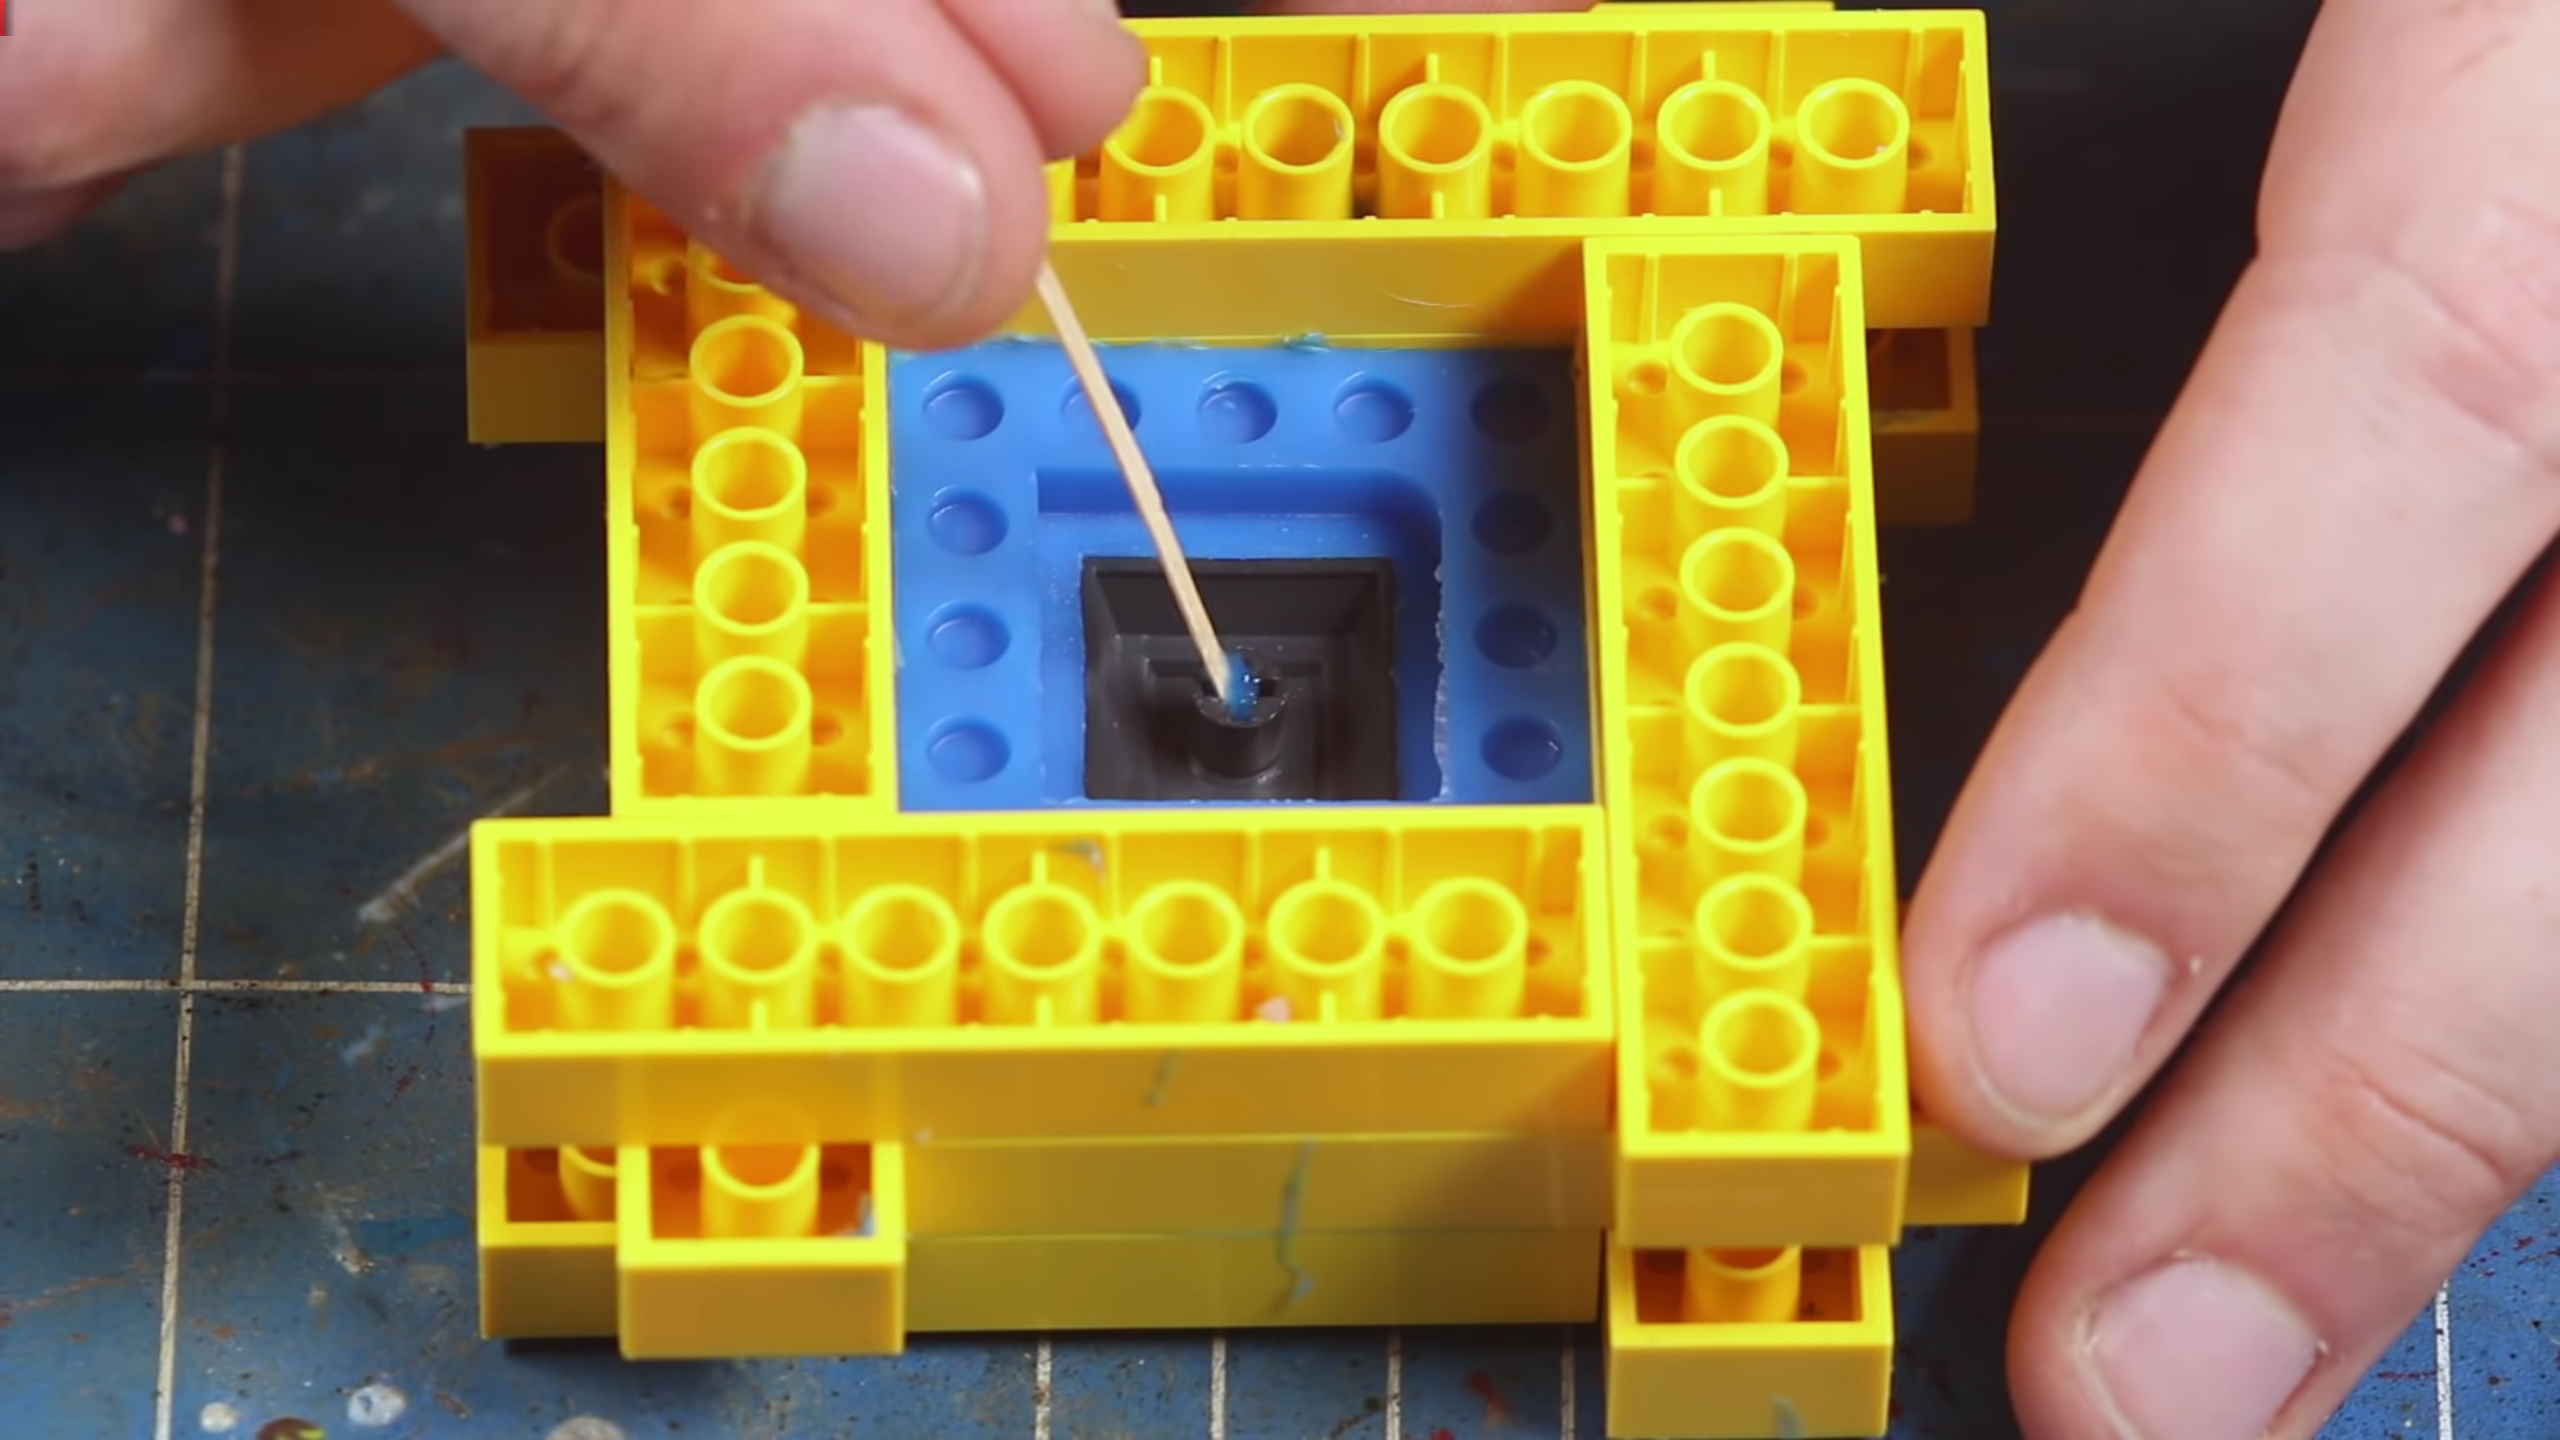 Lego bricks being used in the resin cast process